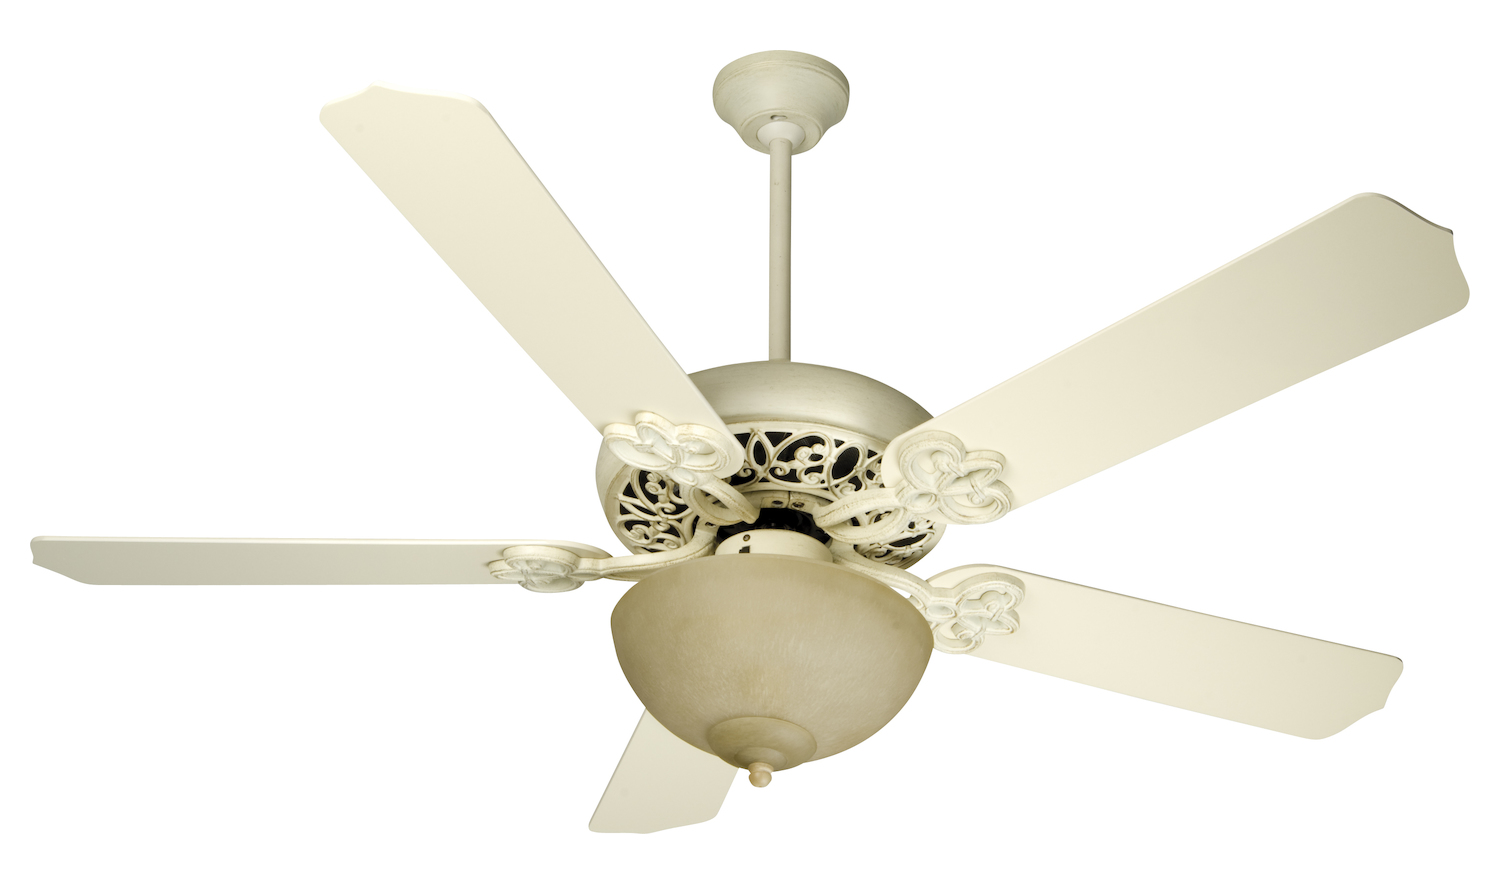 Craftmade Awd Antique White Distressed Ceiling Fan Awd Antique White Distressed K10618 From